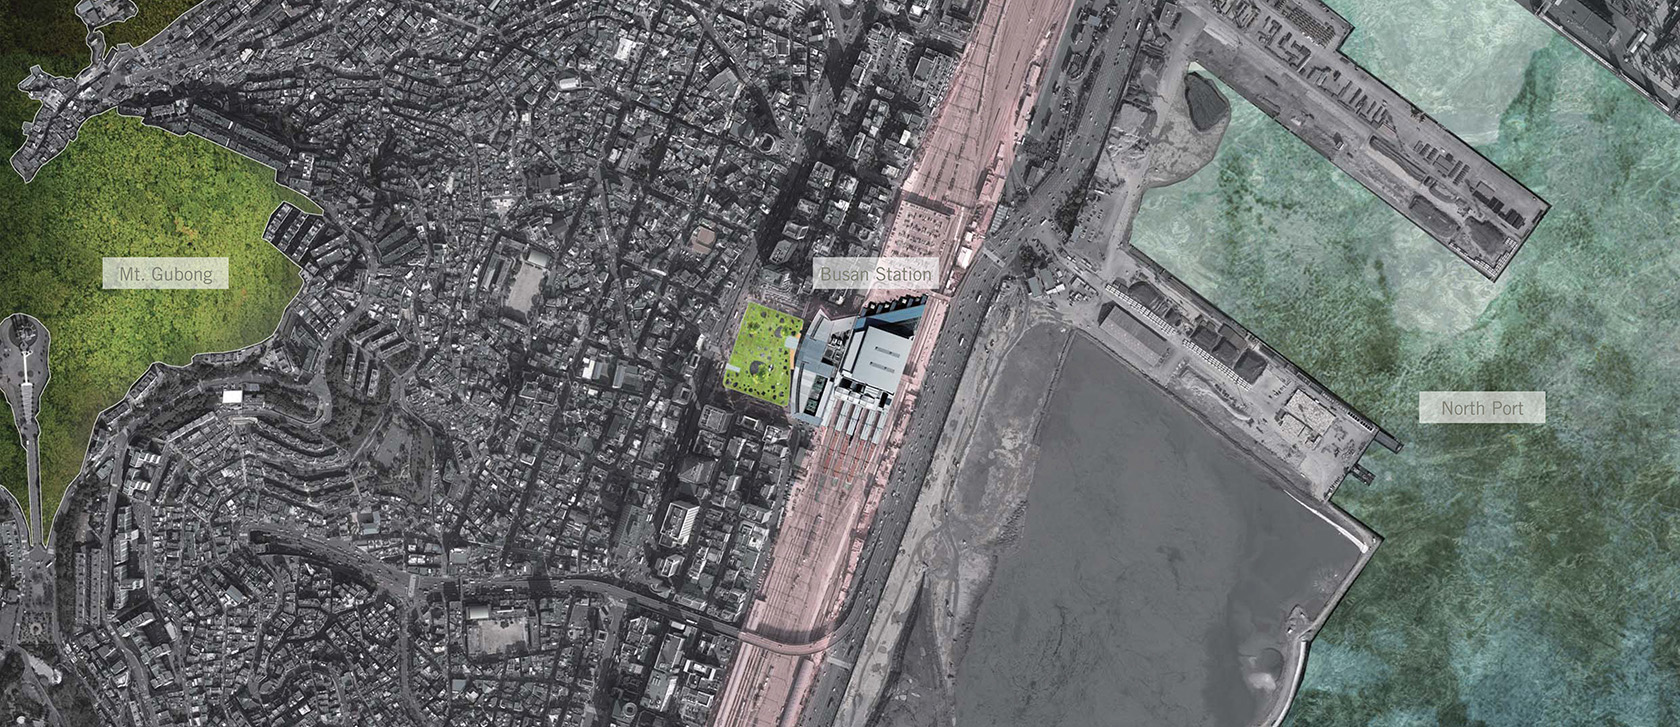 Context with Proposed Urban Park